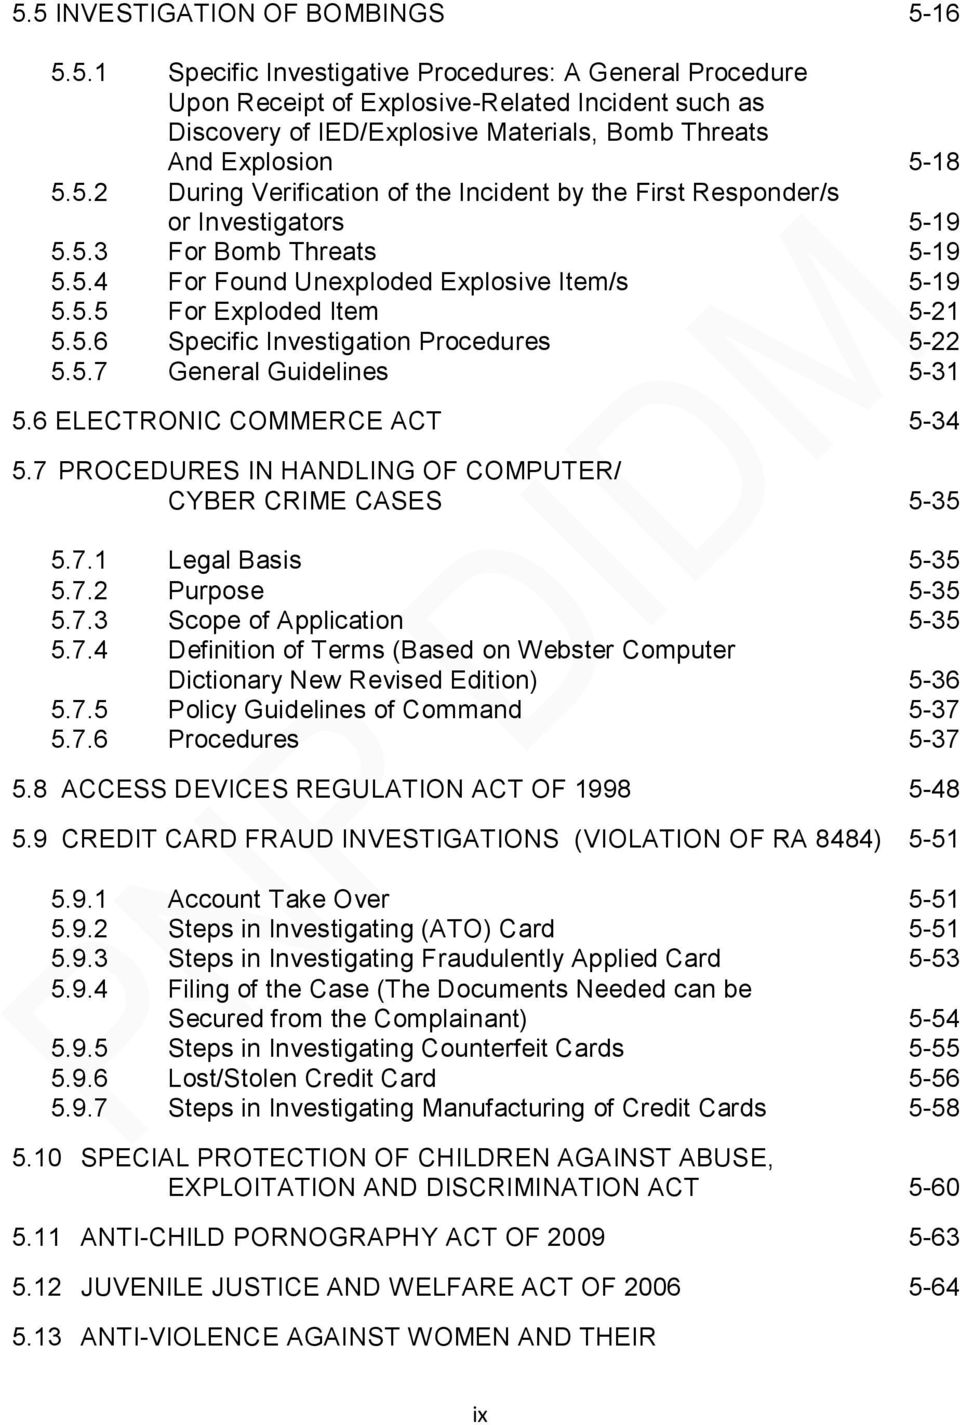 5.7 General Guidelines 5-31 5.6 ELECTRONIC COMMERCE ACT 5-34 5.7 PROCEDURES IN HANDLING OF COMPUTER/ CYBER CRIME CASES 5-35 5.7.1 Legal Basis 5-35 5.7.2 Purpose 5-35 5.7.3 Scope of Application 5-35 5.